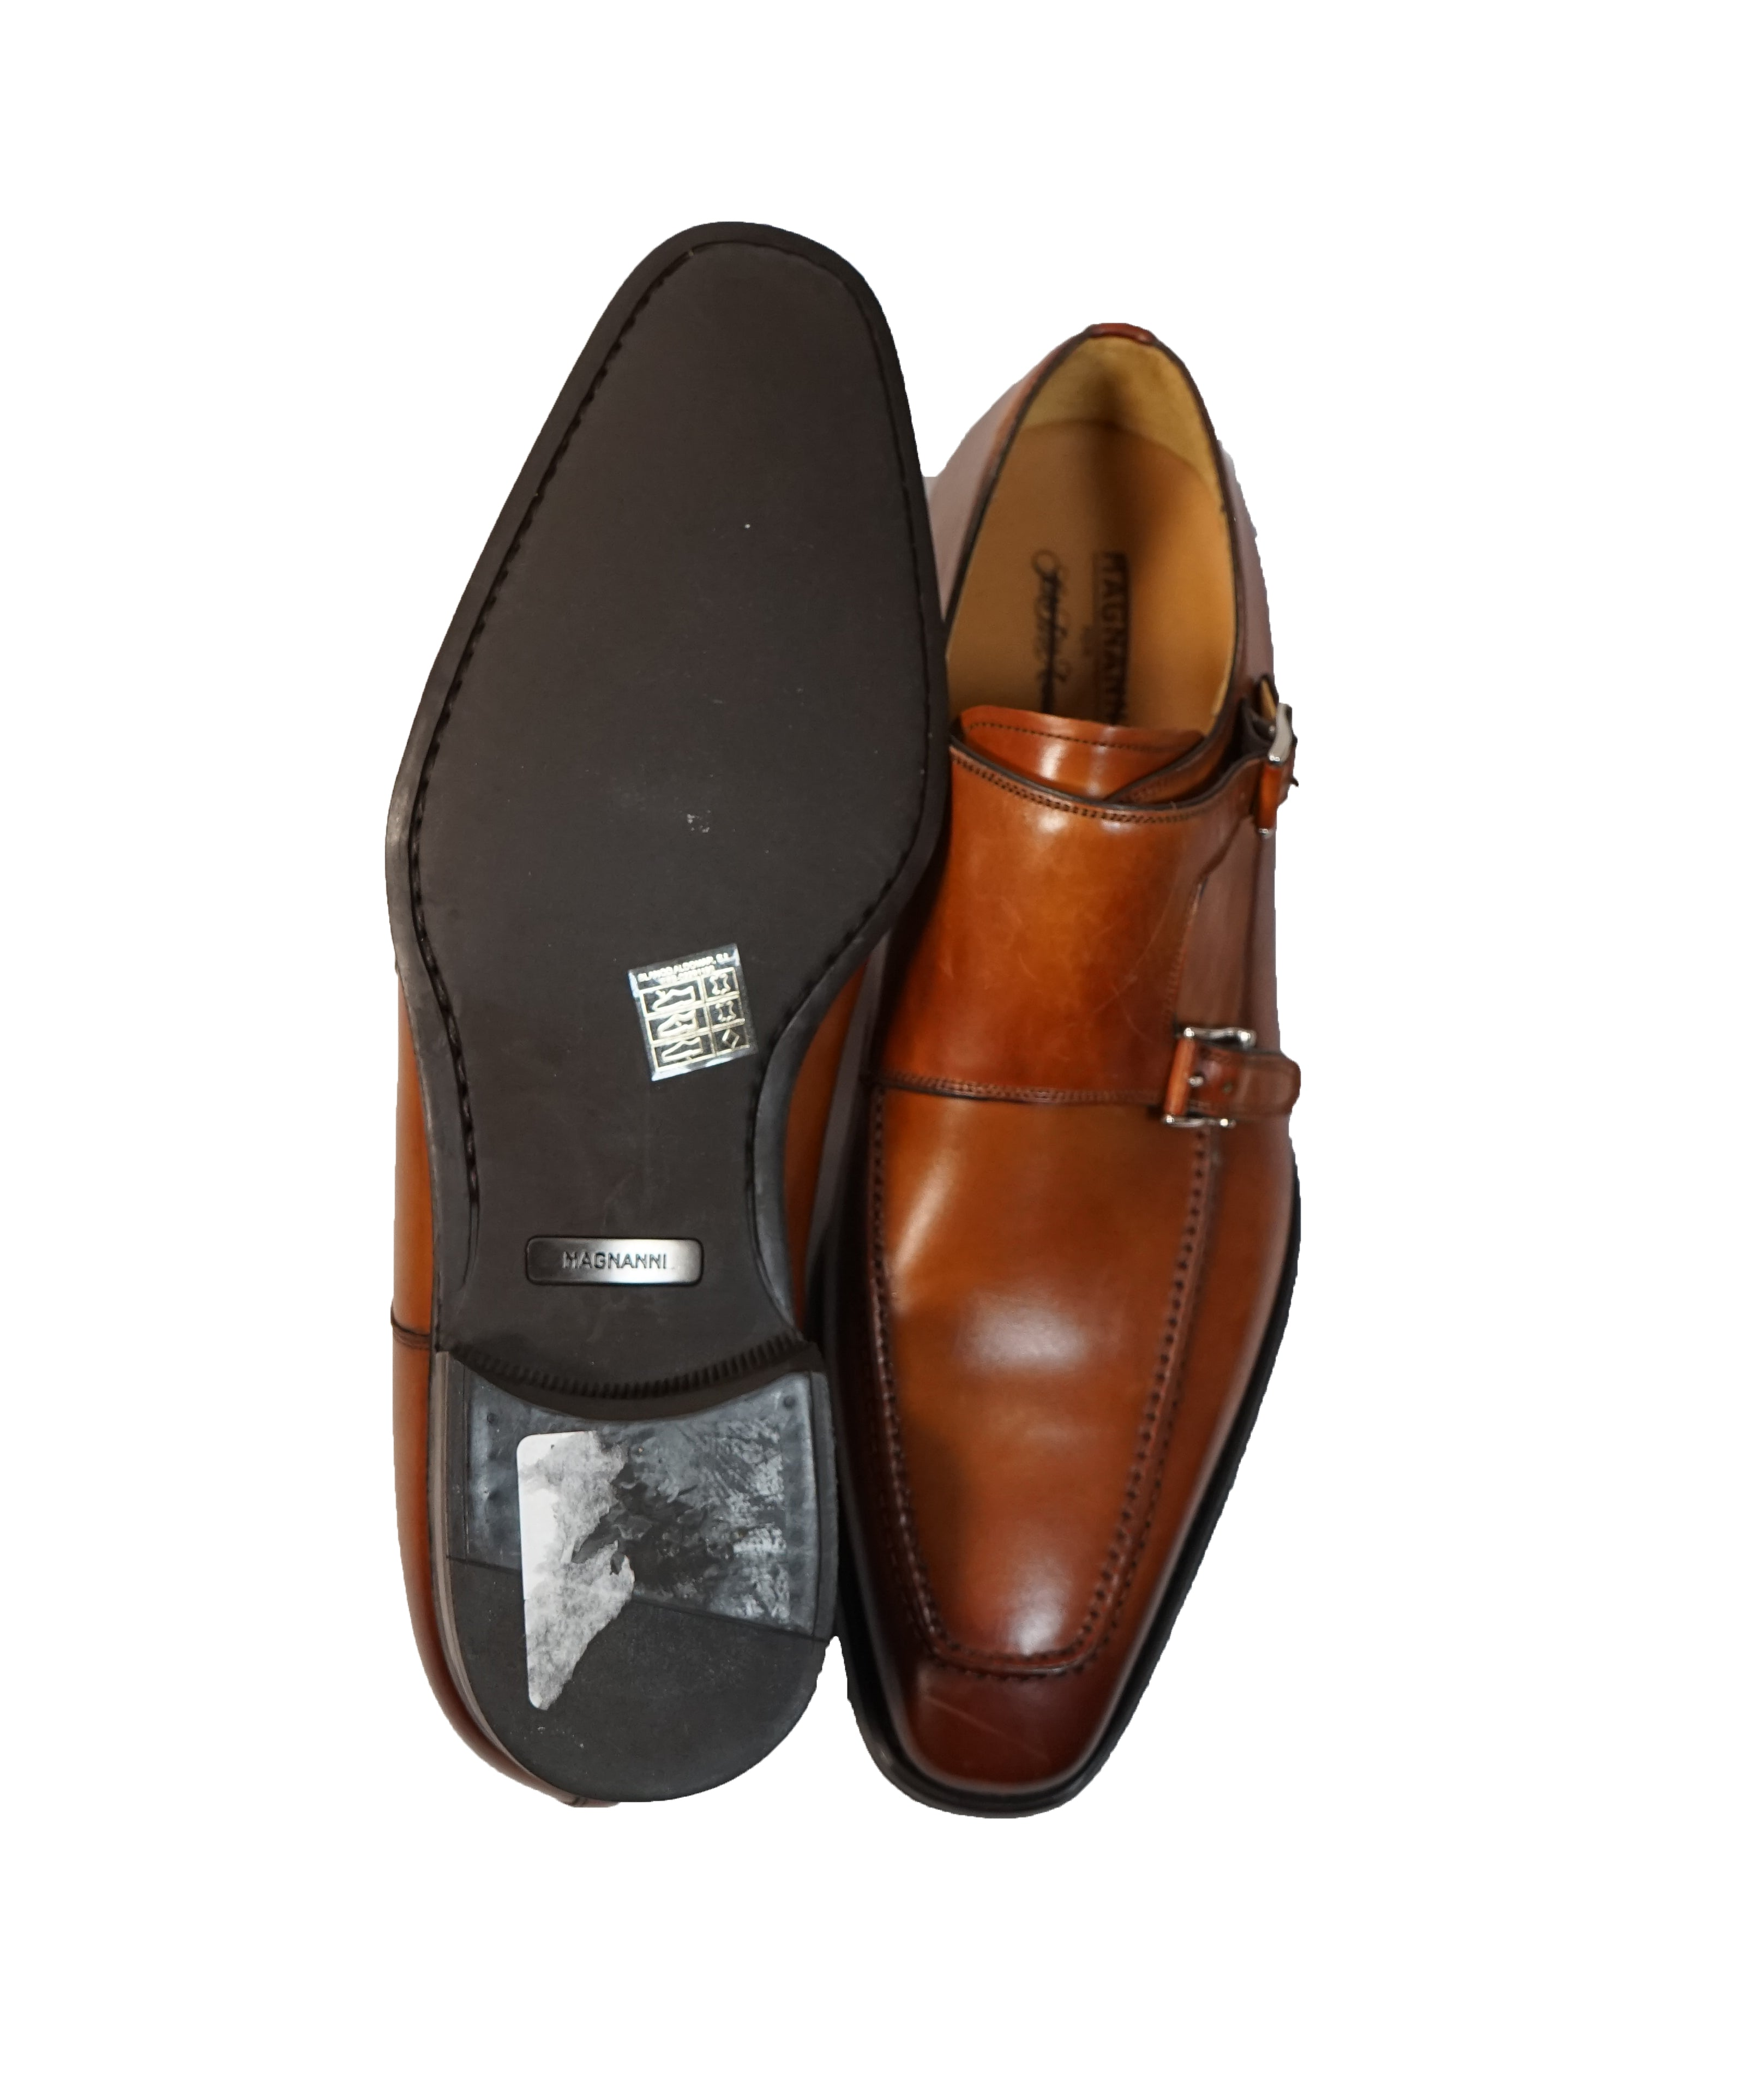 MAGNANNI FOR SFA -Double  Monk Strap Loafers- 10